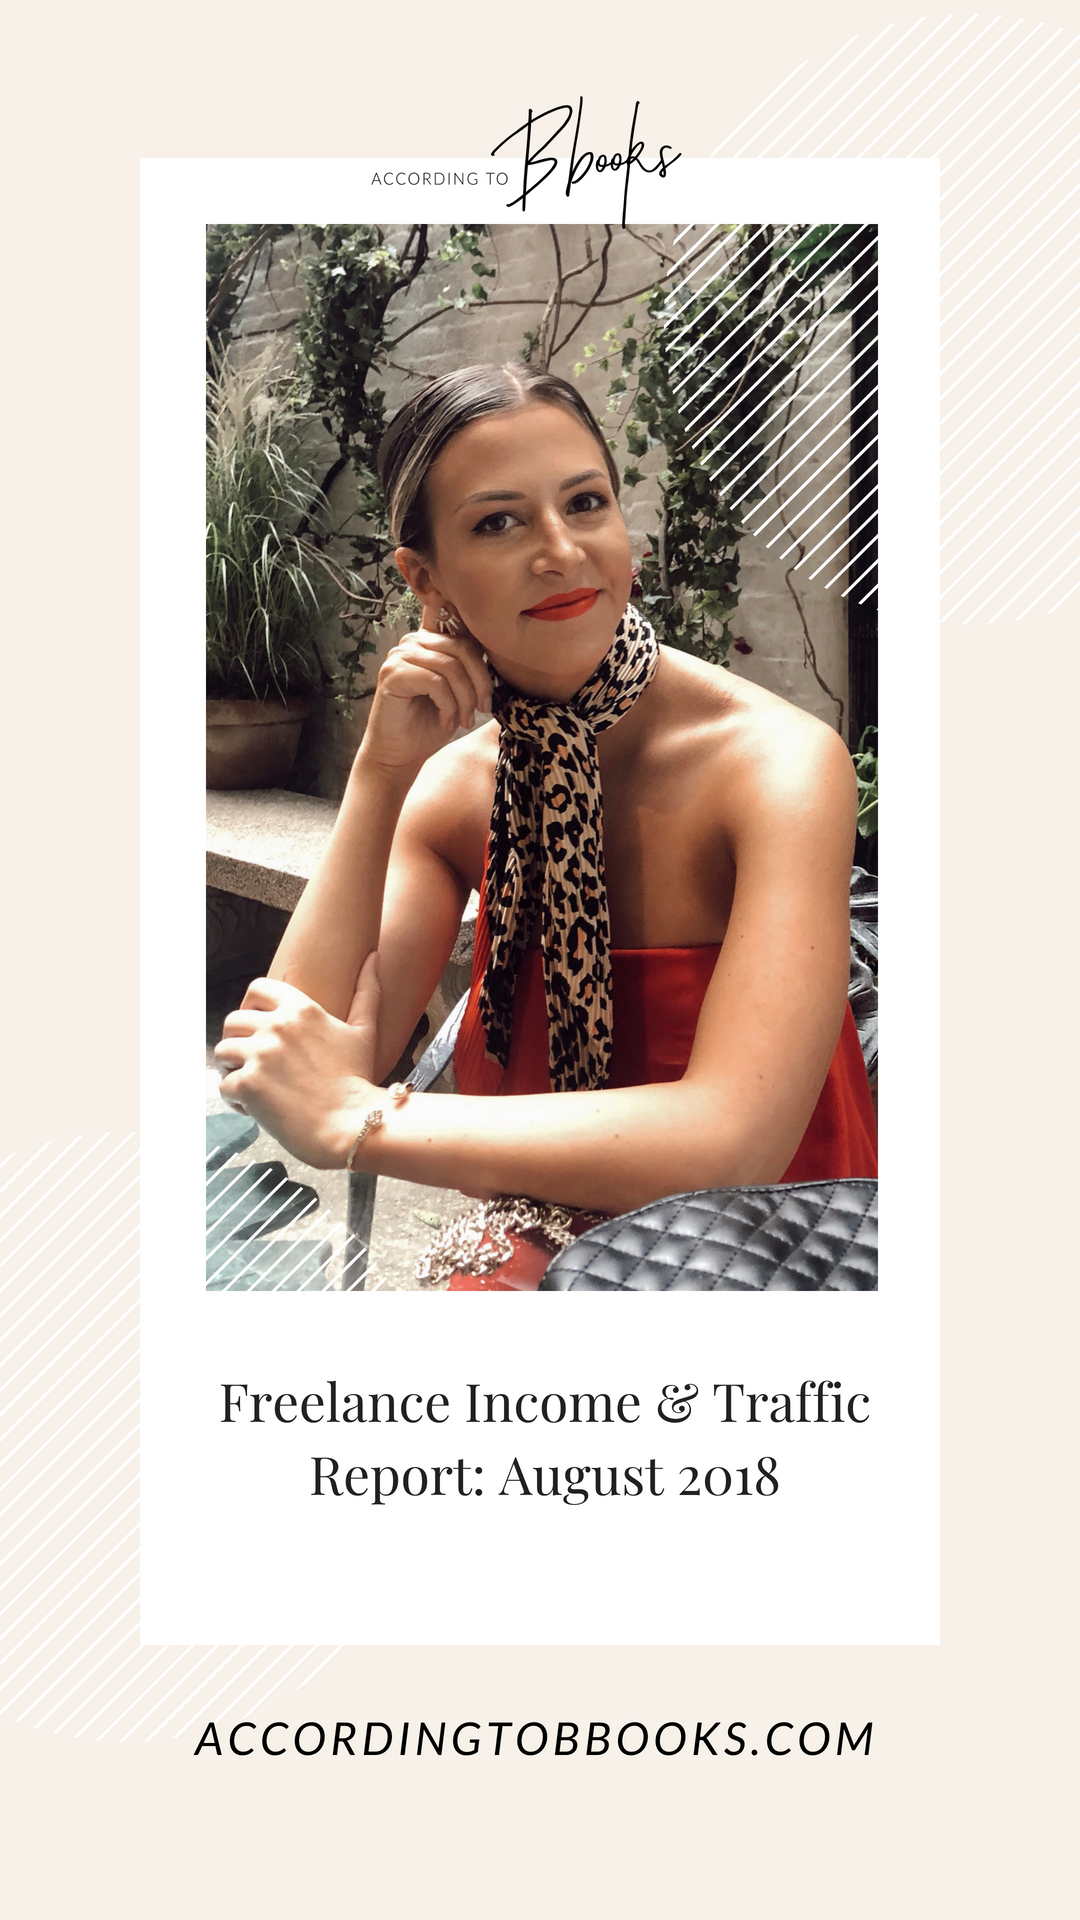 Freelance Income & Traffic Report: August 2018